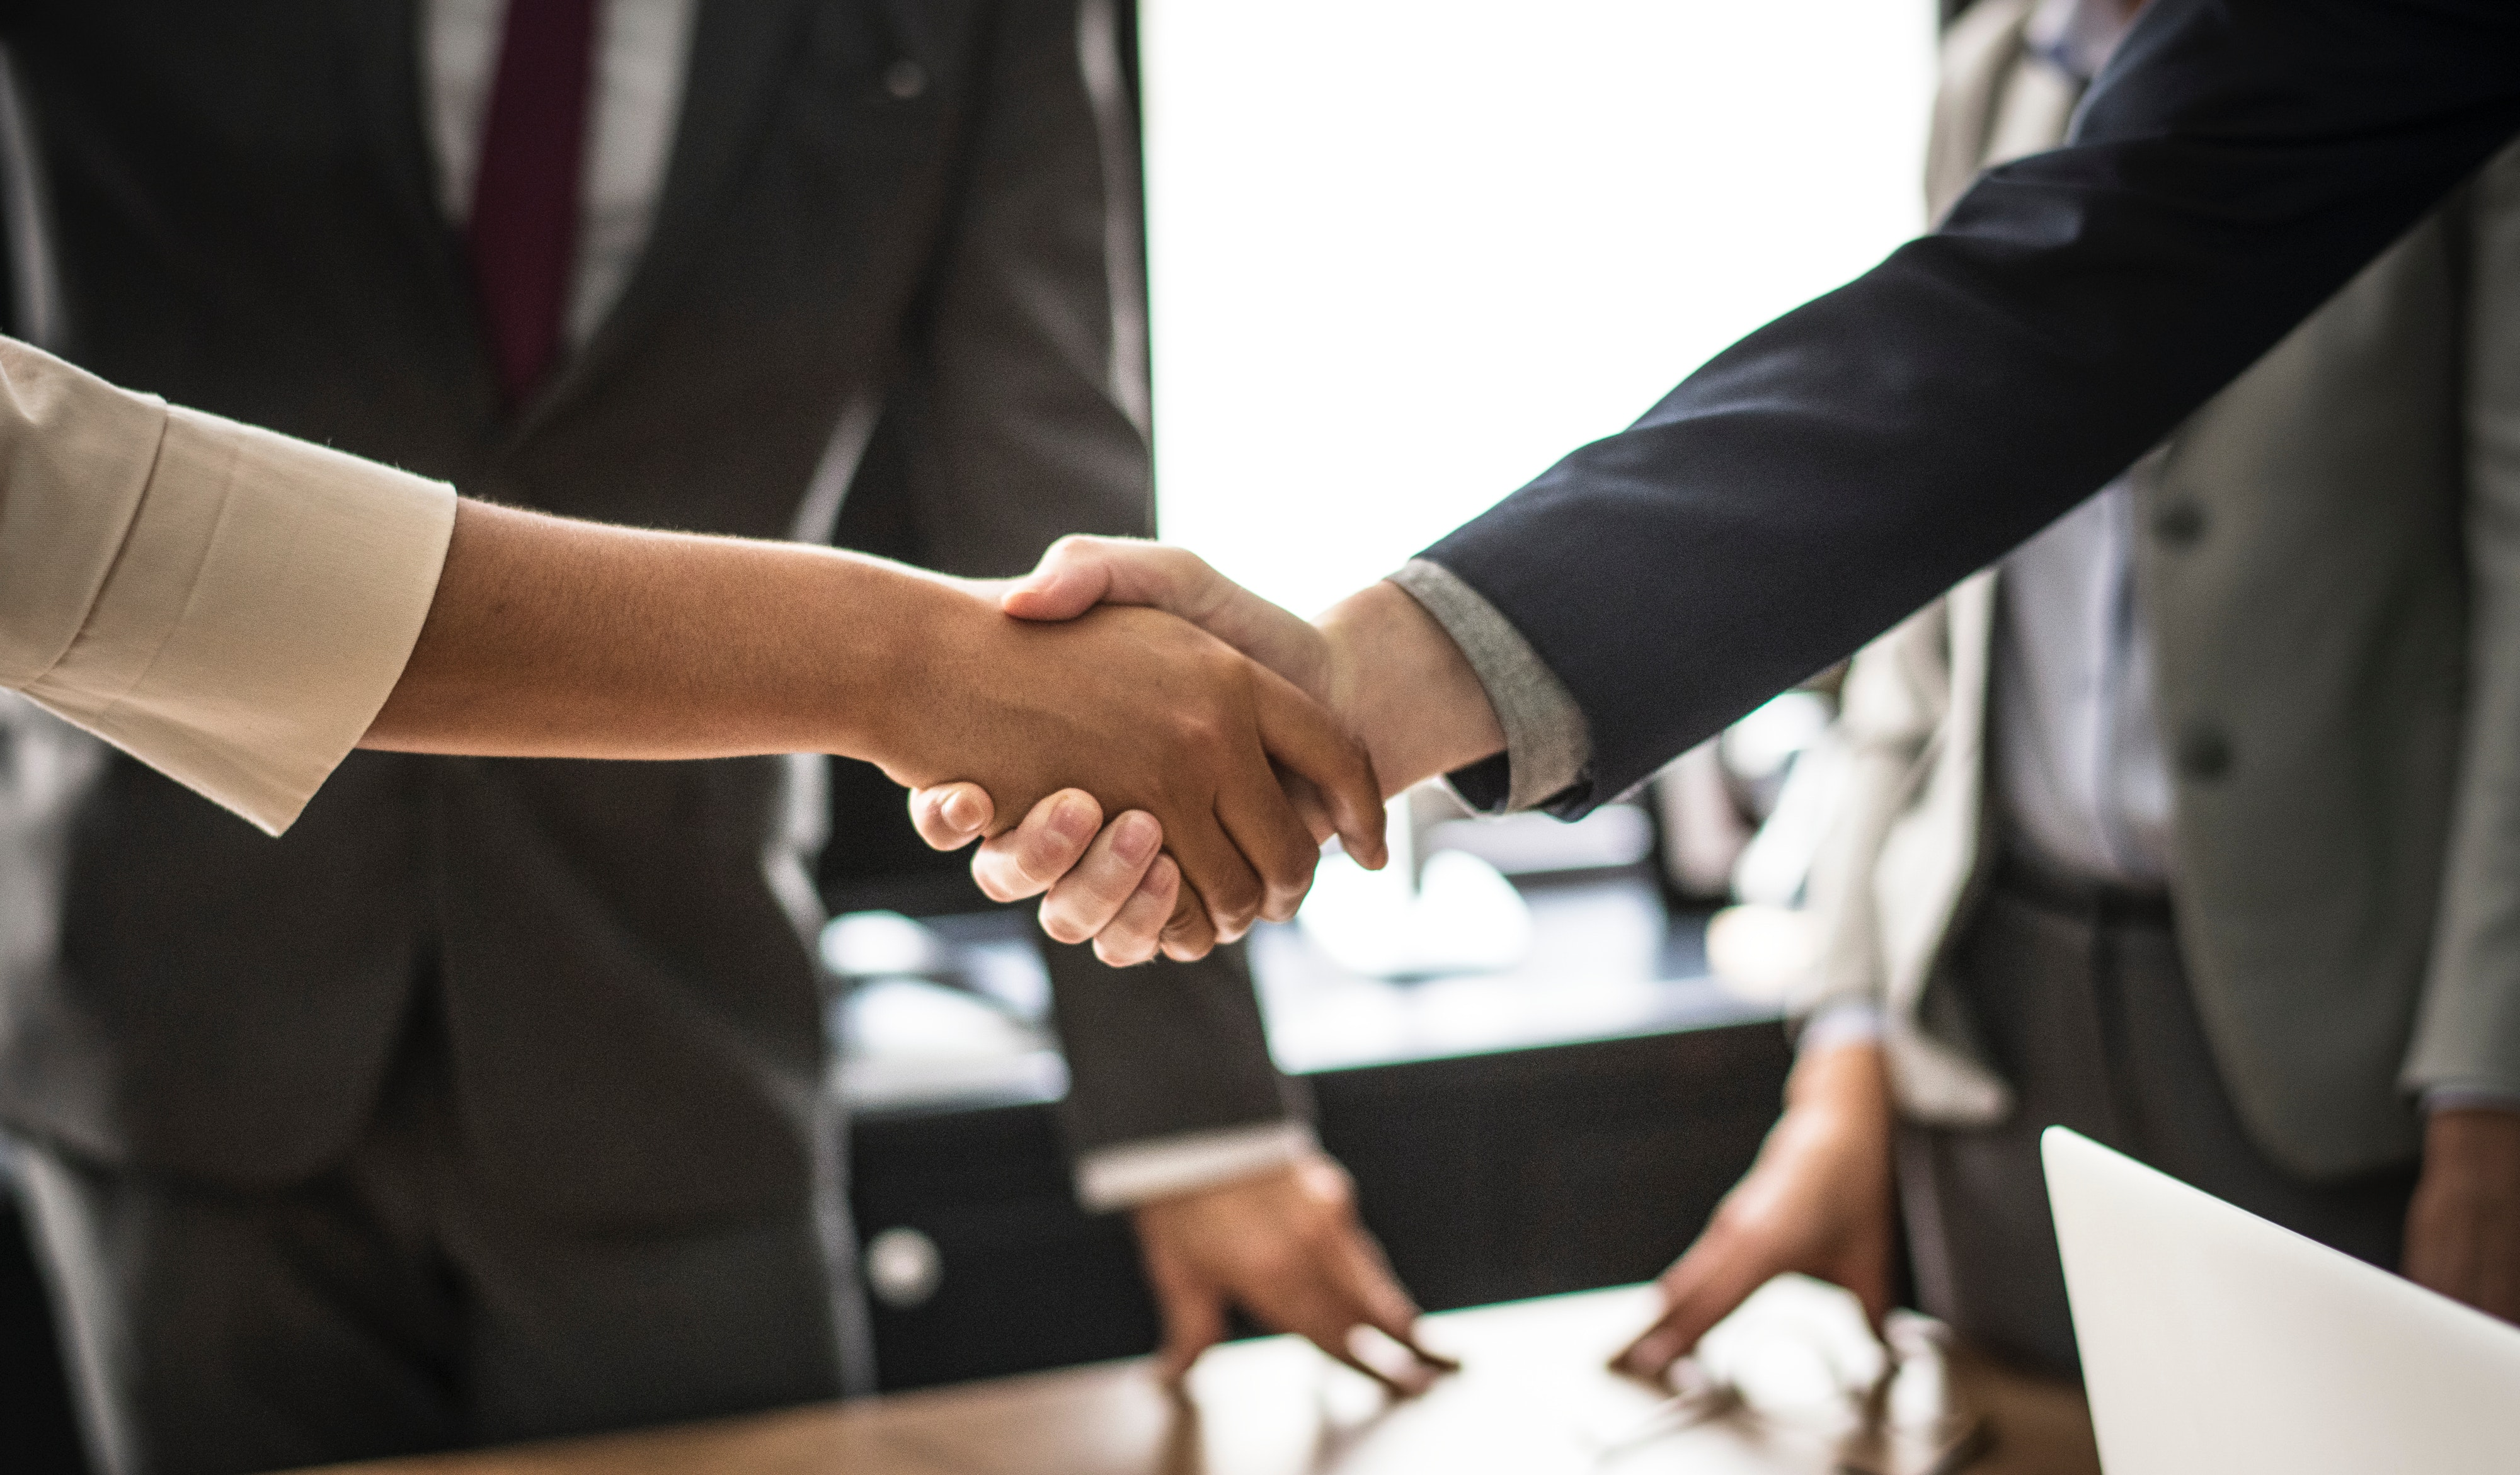 A white person and minority shaking hands at a business office.